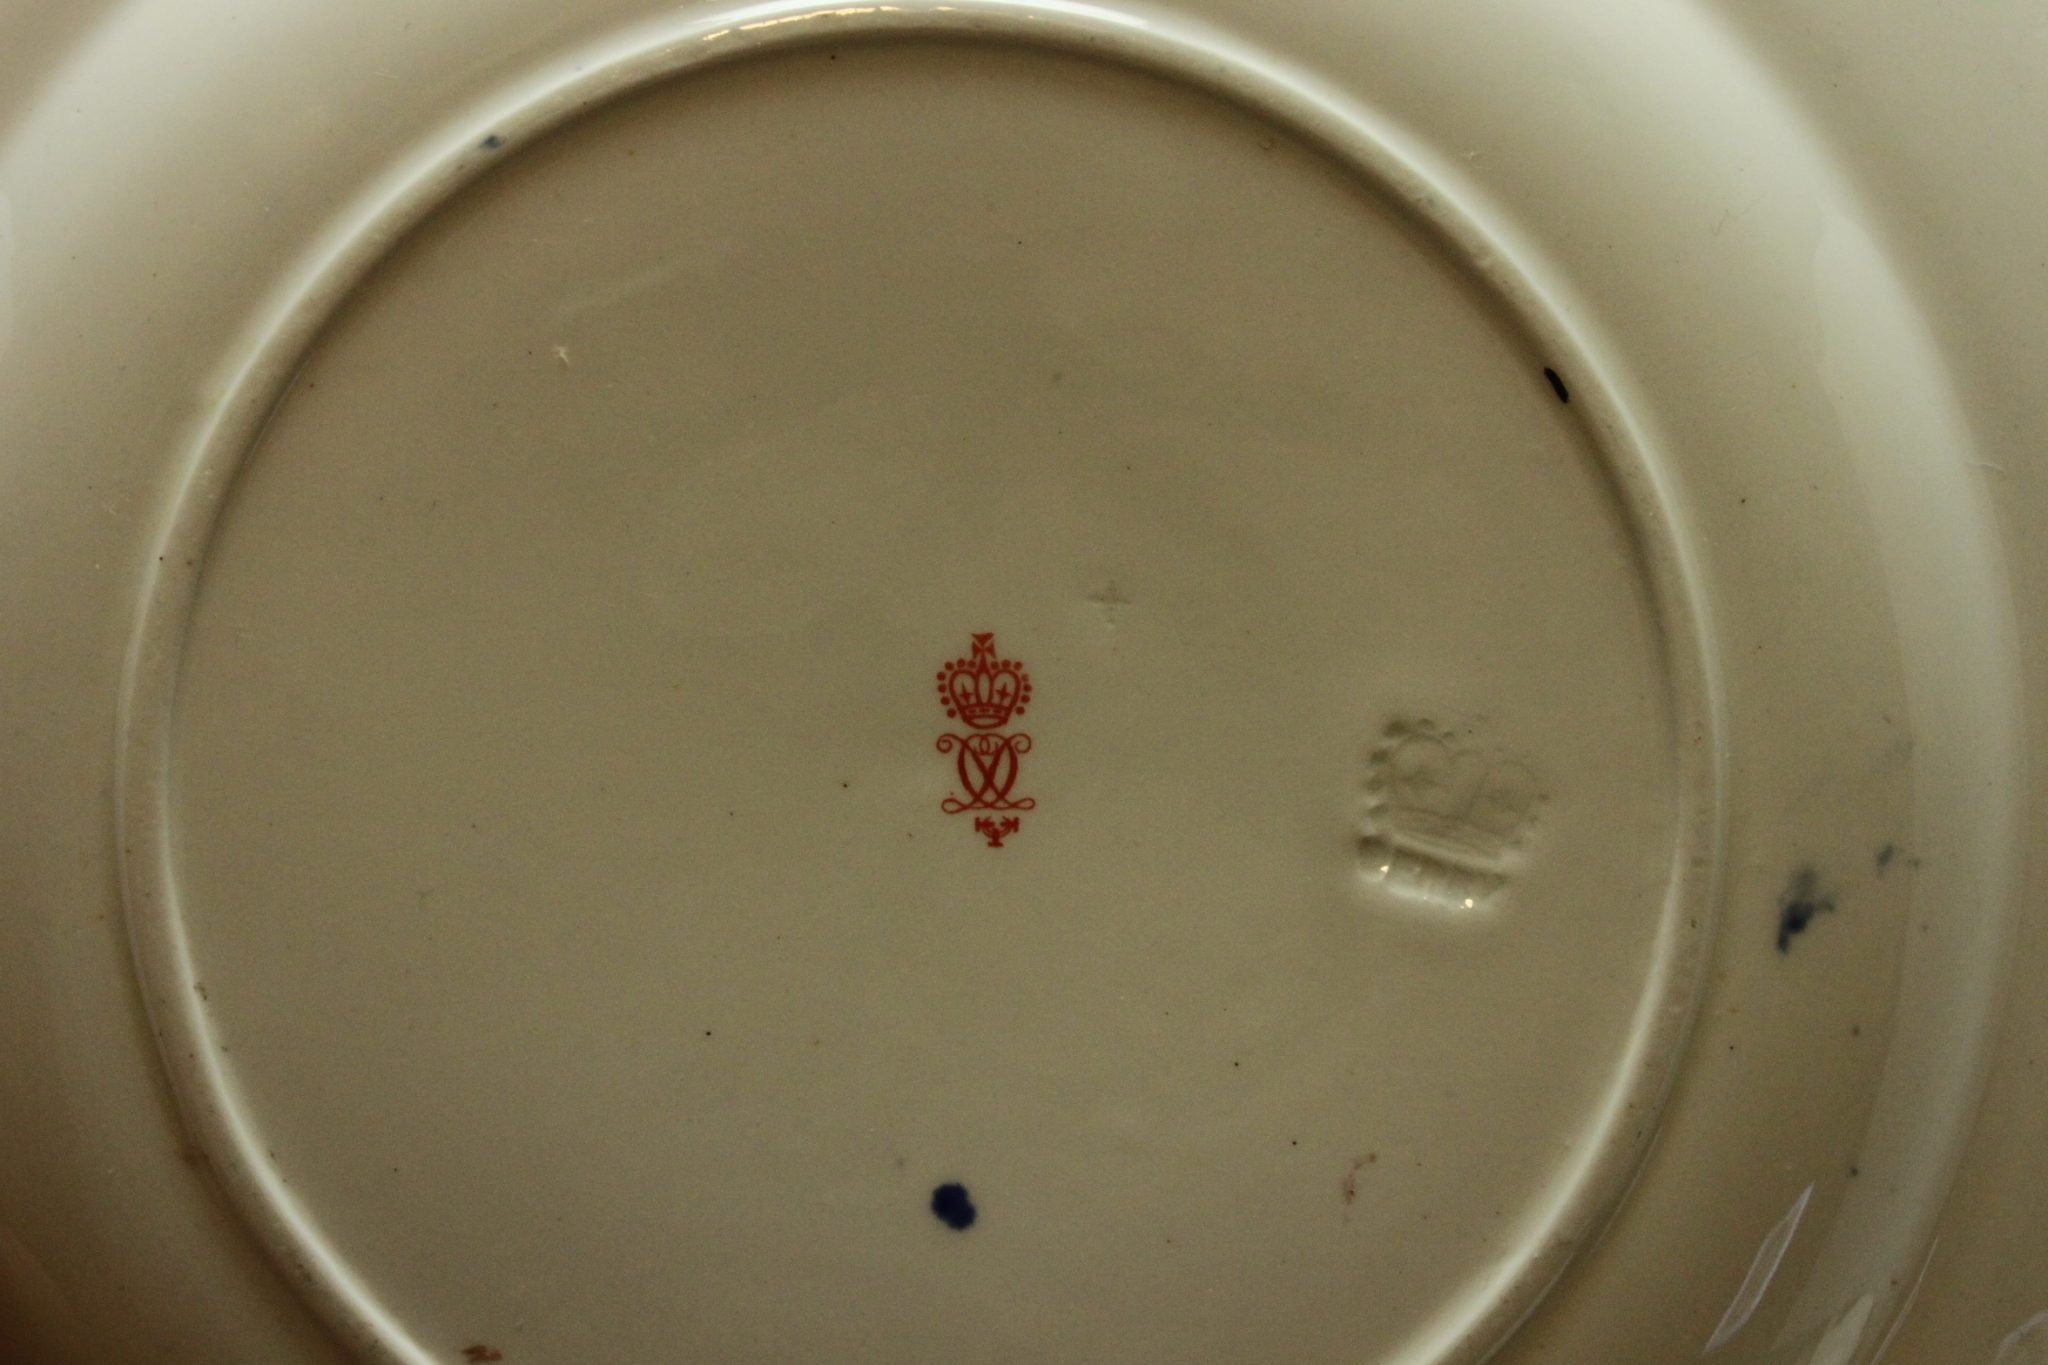 Royal Crown Derby Imari plate pattern 563